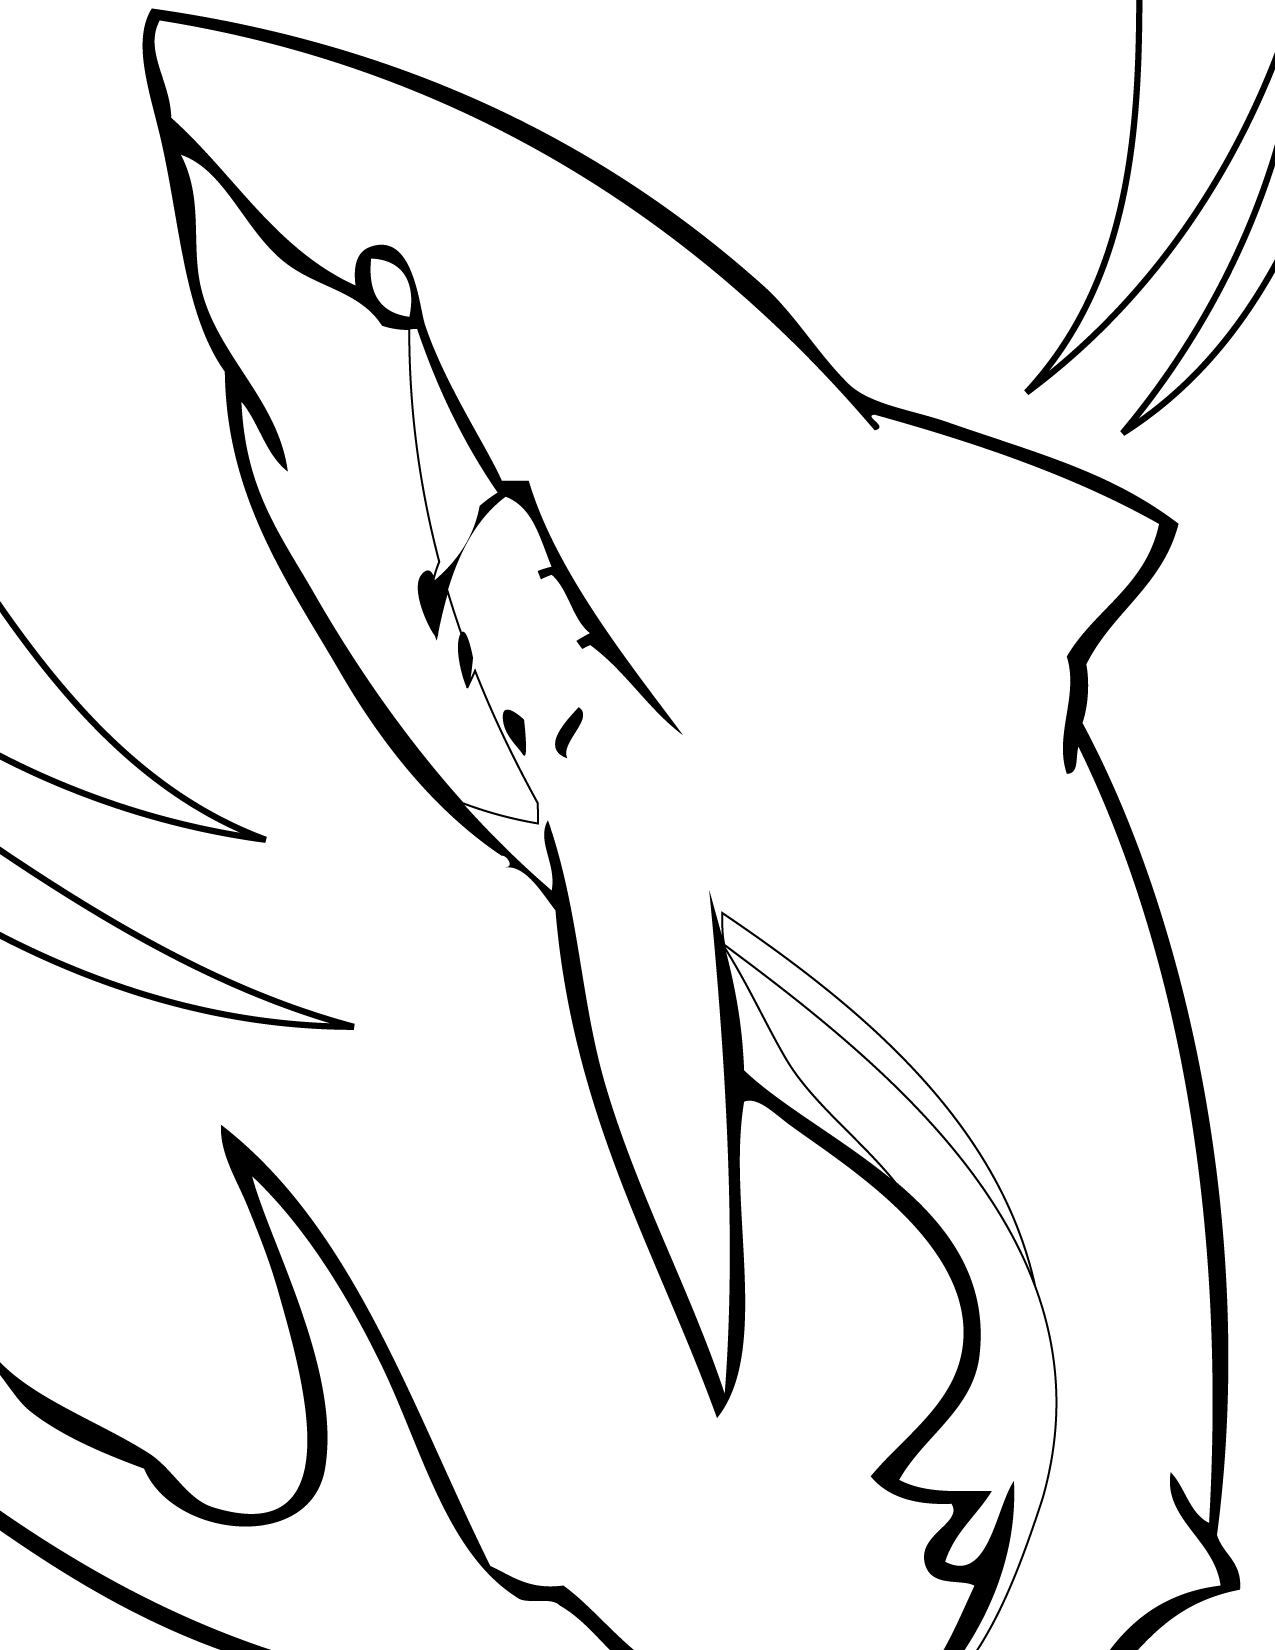 Spotted eagle ray coloring pages - Great White Shark Coloring Pages Pictures